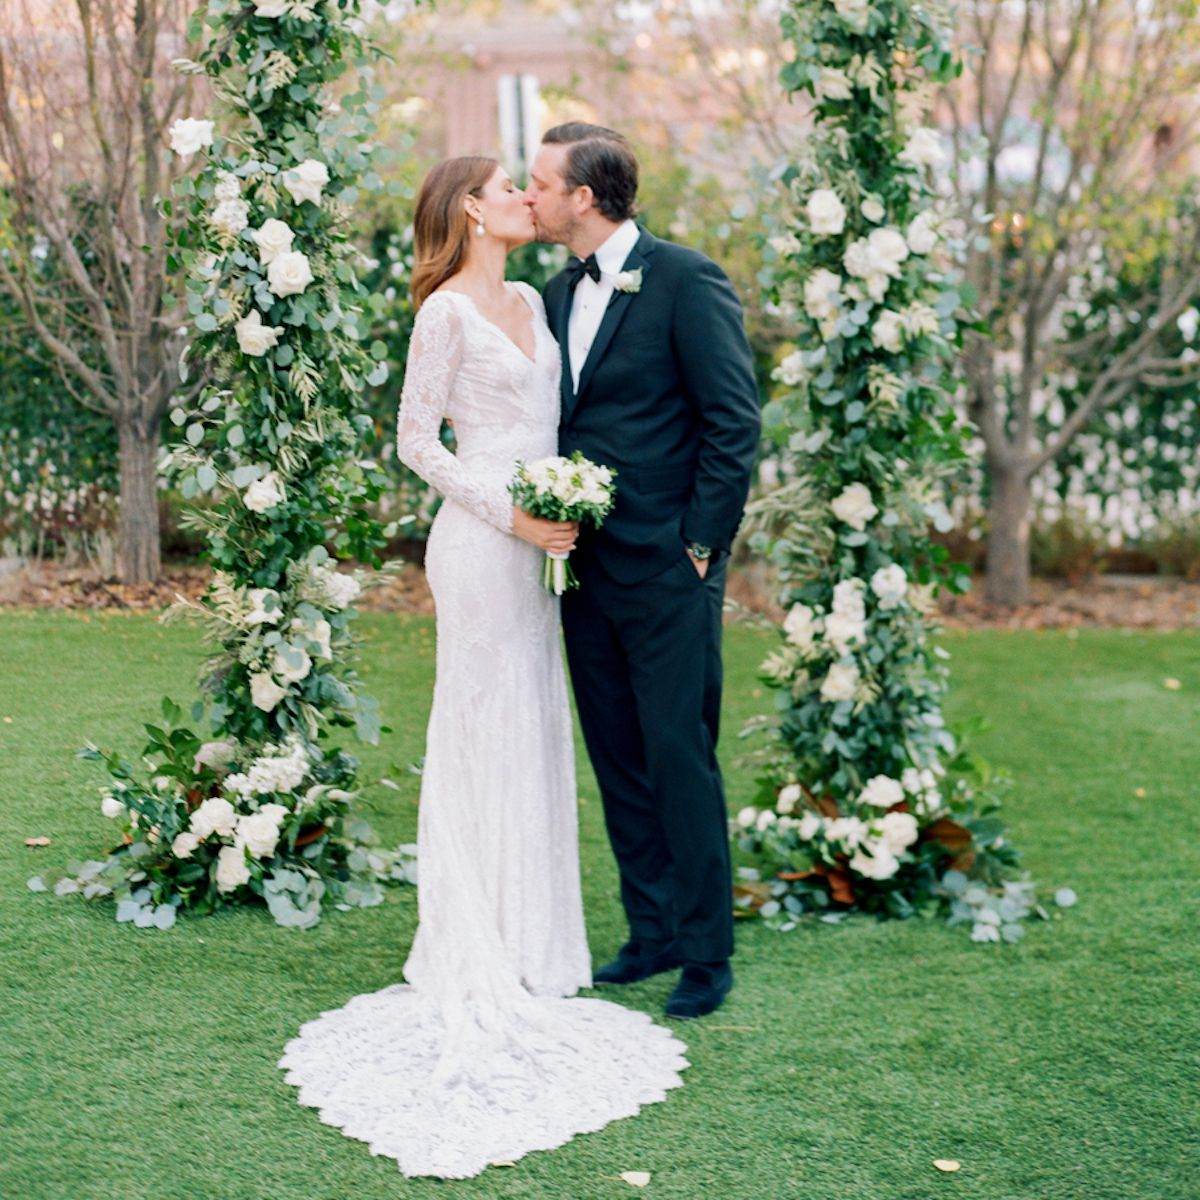 Destination Wedding Gift Etiquette: A Sophisticated Wedding At Hotel Jerome In Aspen